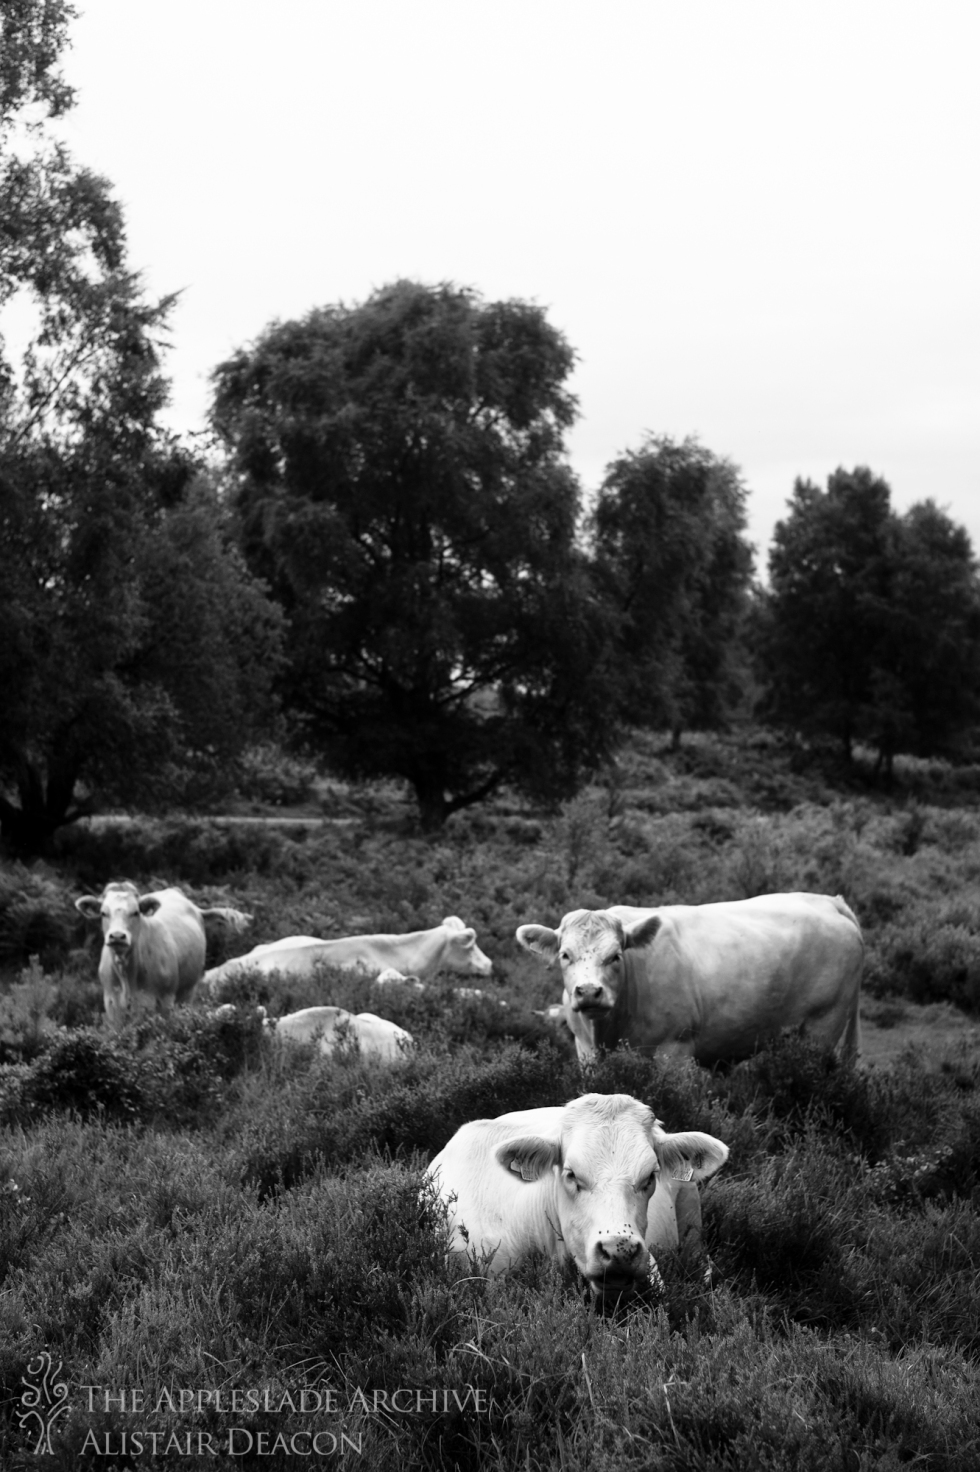 Cattle out on forest, Nr. Dockens Water, New Forest, Hampshire, 4th Aug 2013